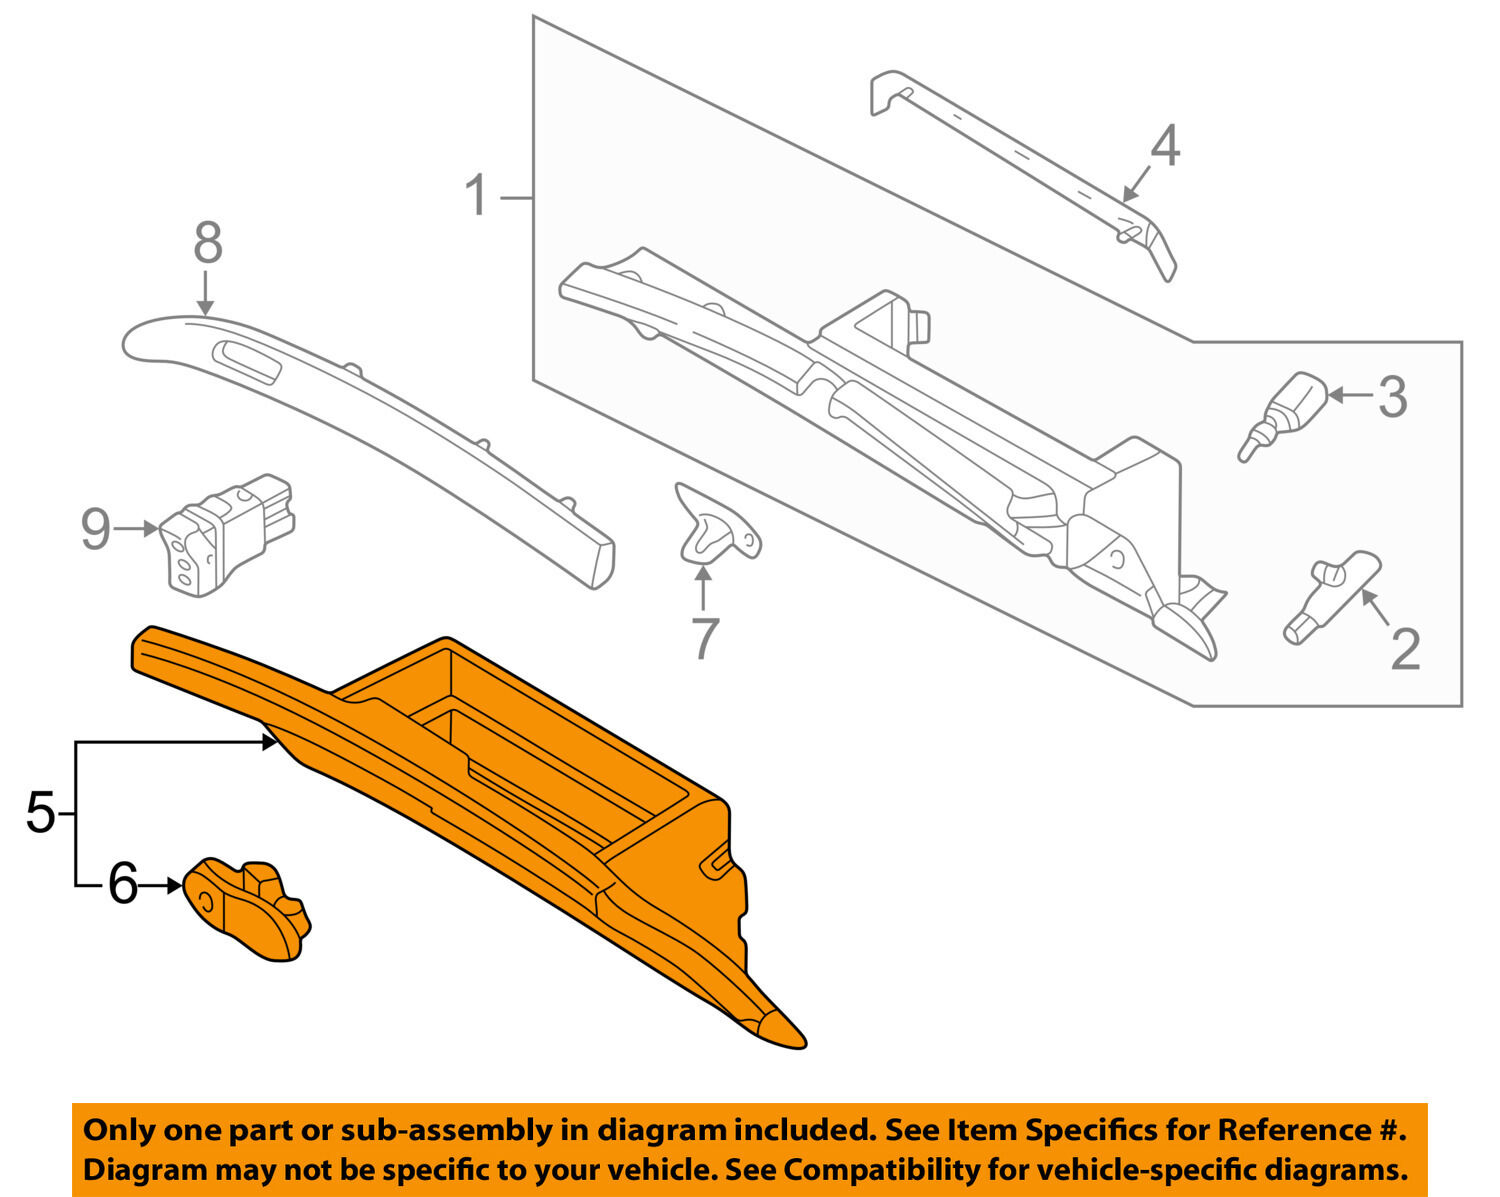 Infiniti Nissan Oem 05 06 Q45 Dash Glove Compartment Box Door Engine Diagram 1 Of 2only 0 Available